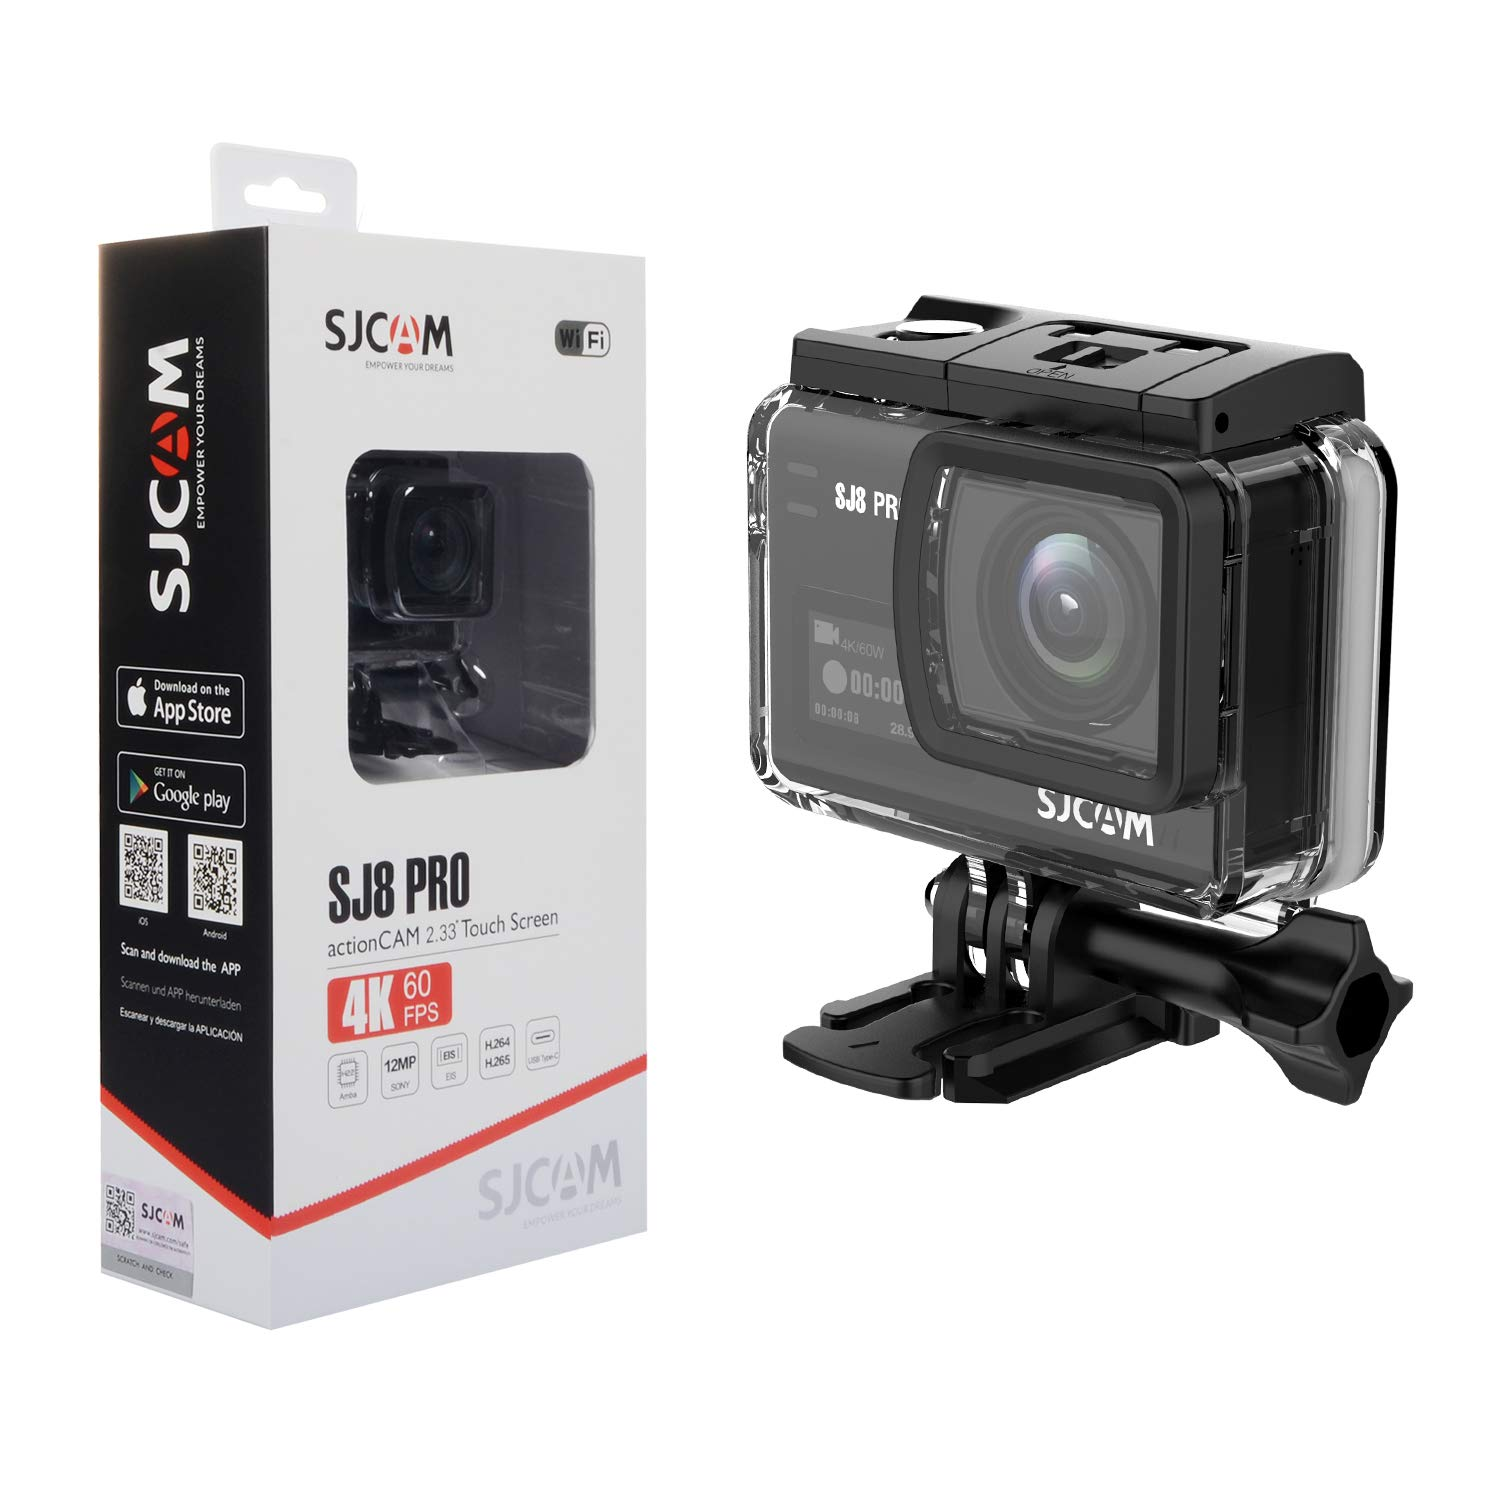 SJCAM SJ8 Pro 4K 60fps Sport Action Camera Mini DV Ambarella H22 S85 SONY  IMX377 Wi-Fi Sports Cam Underwater Camcorder 12MP 30M Waterproof with